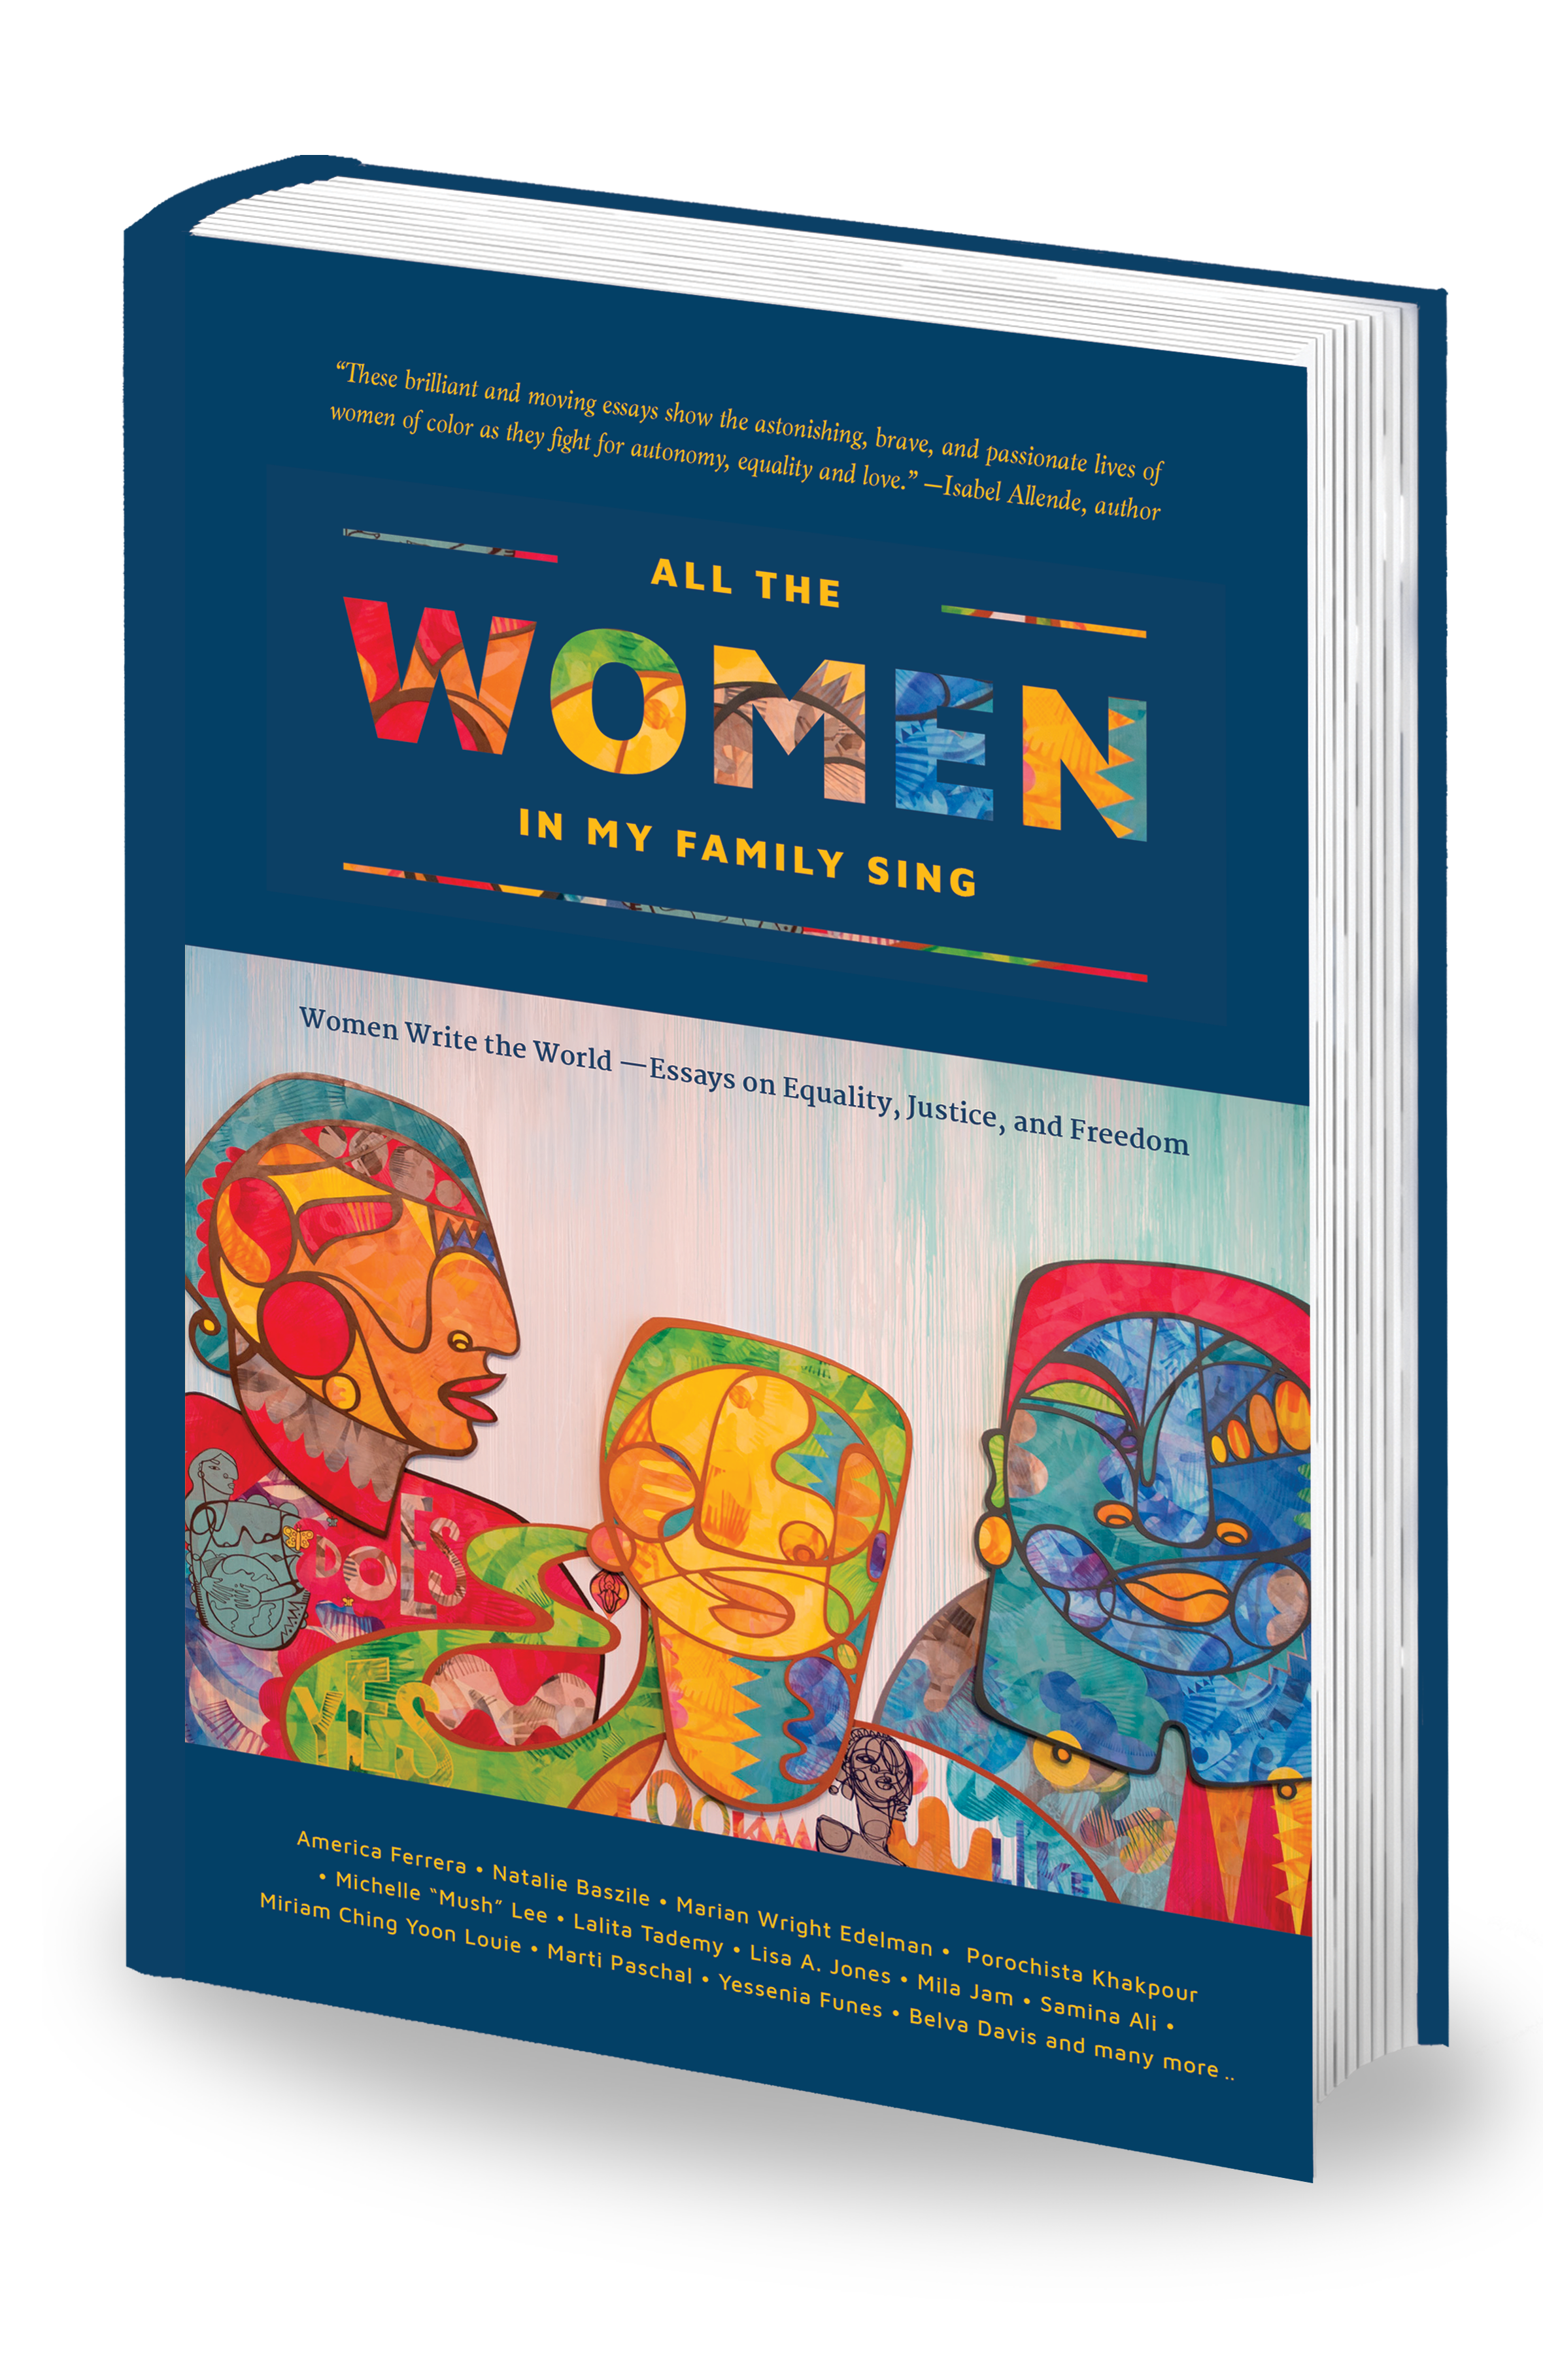 """These brilliant and moving essays show the astonishing, brave, and passionate lives of women of color as they fight for autonomy, equality and love."" — Isabel Allende, author -  All the Women in My Family Sing is a vital collection of prose and poetry by women of color, with topics that range from the pressures of being the vice-president of a Fortune 500 Company, to escaping the killing fields of Cambodia, to the struggles inside immigration, identity, romance and self-worth. The brief, trenchant essays capture the aspirations and wisdom of these powerful women as they exercise autonomy, creativity, and dignity and build bridges to heal the brokenness in today's turbulent world."